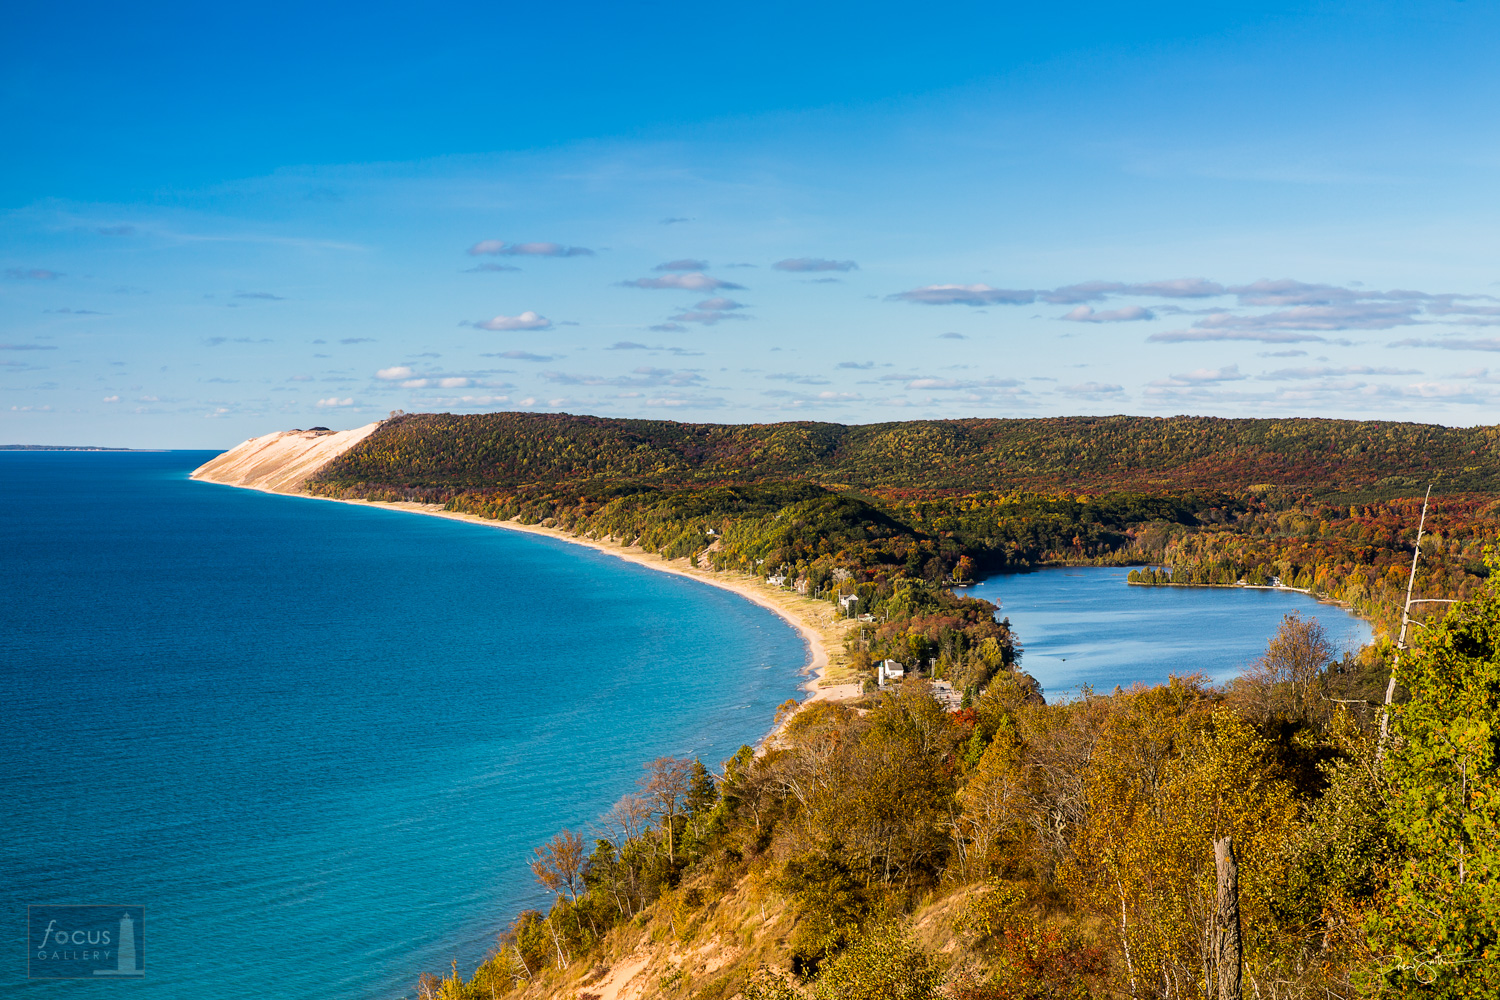 View of Sleeping Bear Dune from the Empire Bluff Trail in Sleeping Bear Dunes National Lakeshore.